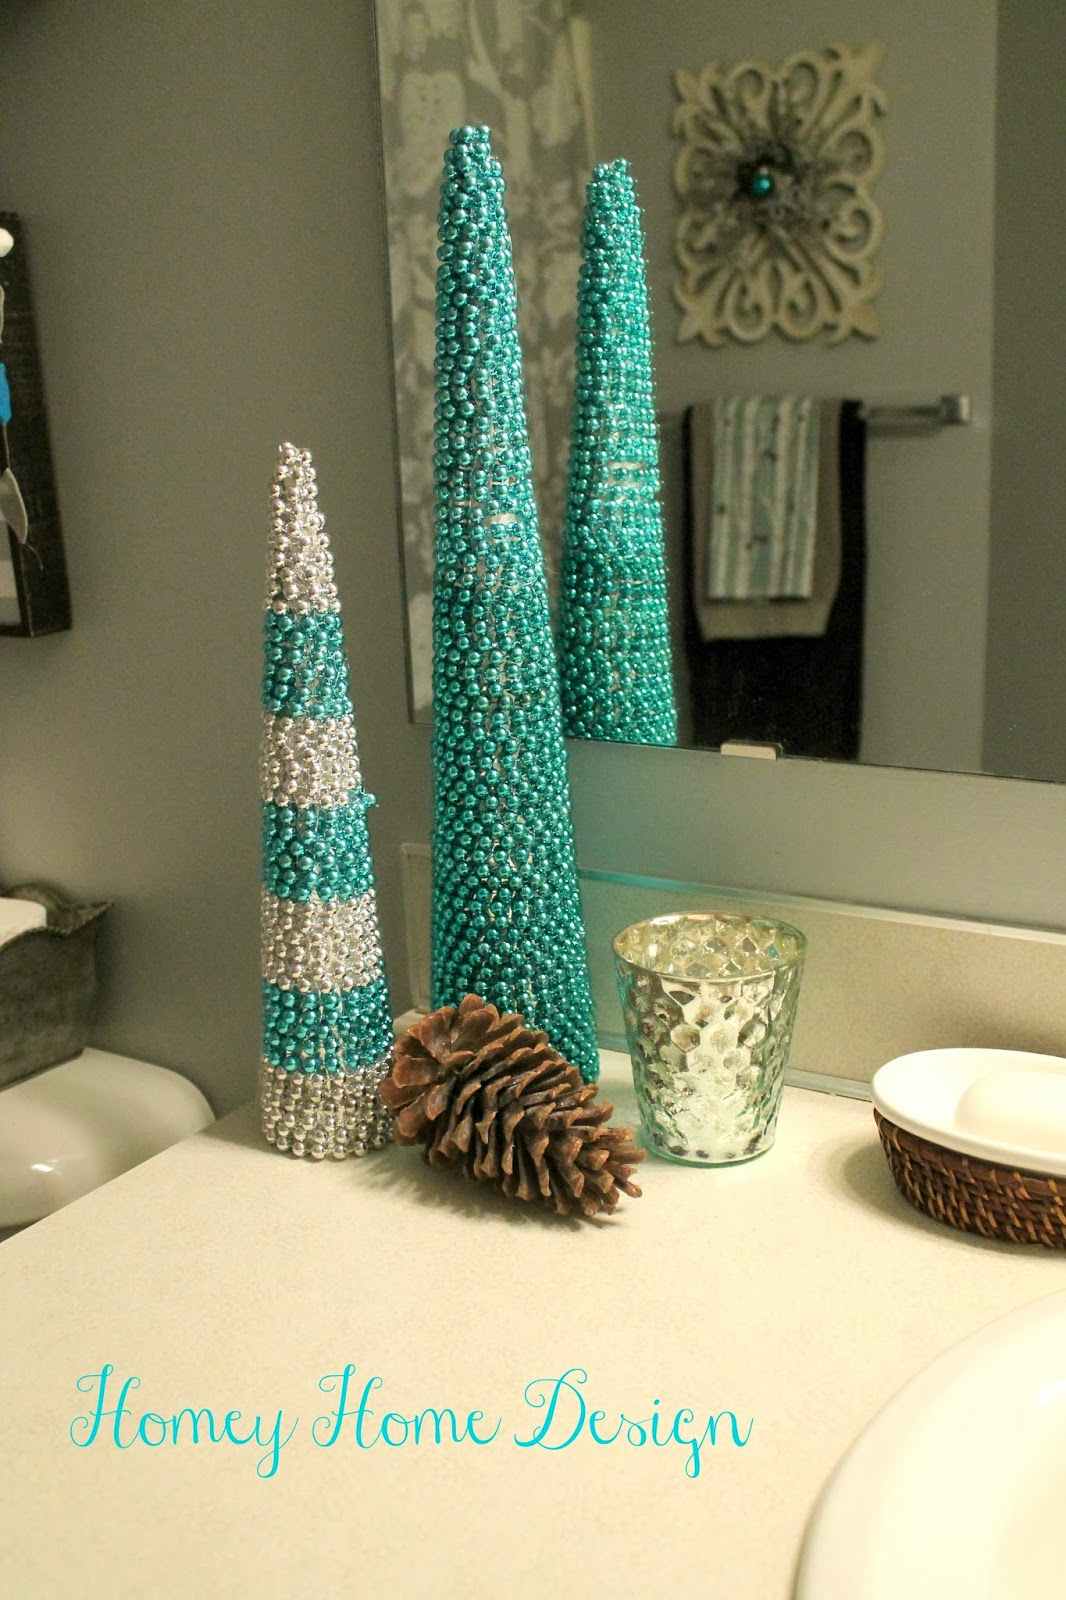 How To Decorate A Small Bathroom For Christmas: Homey Home Design: Bathroom Christmas Ideas